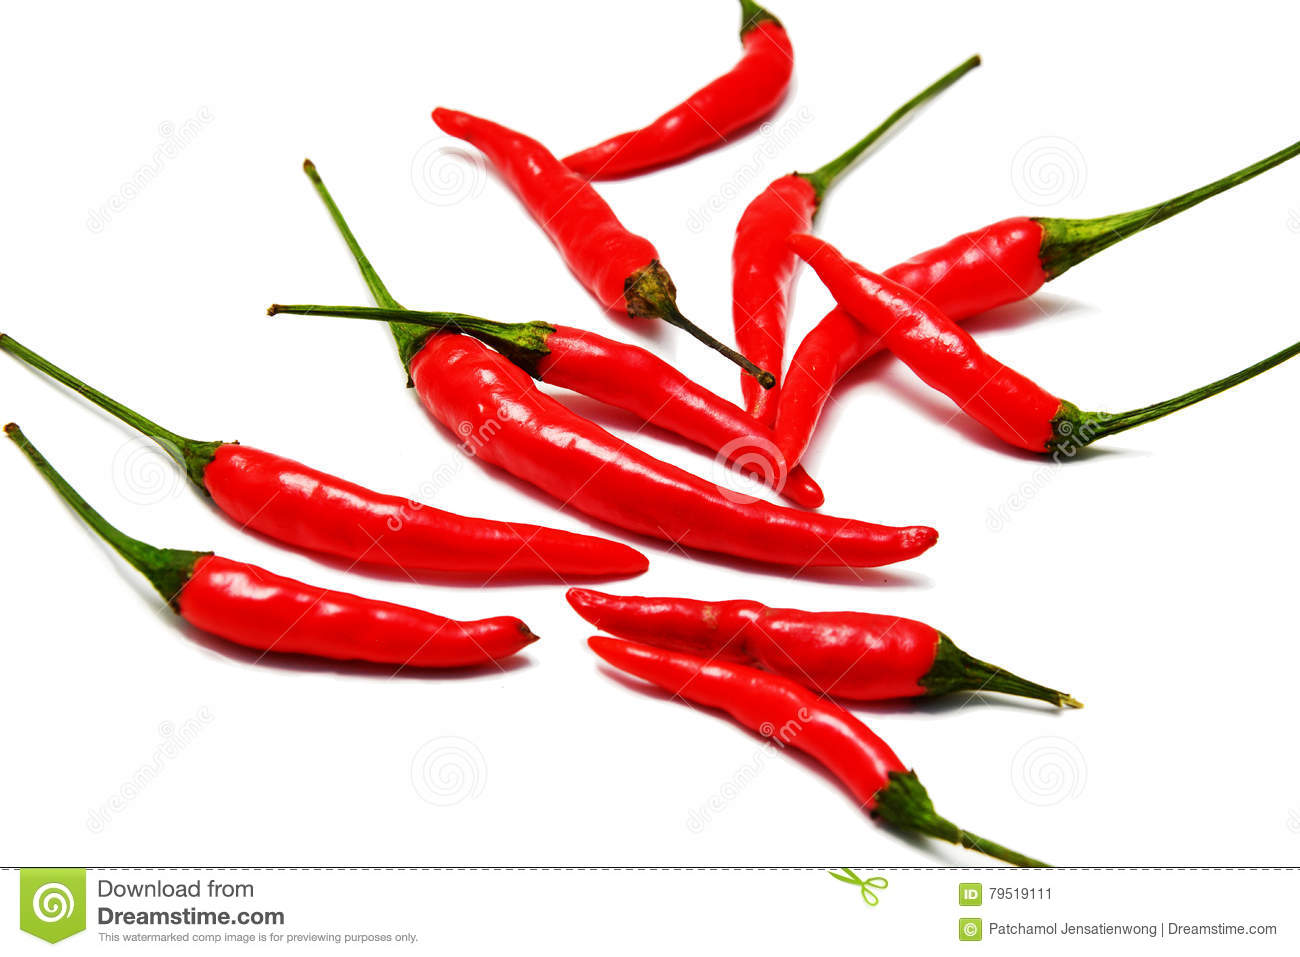 Chiles tailandeses